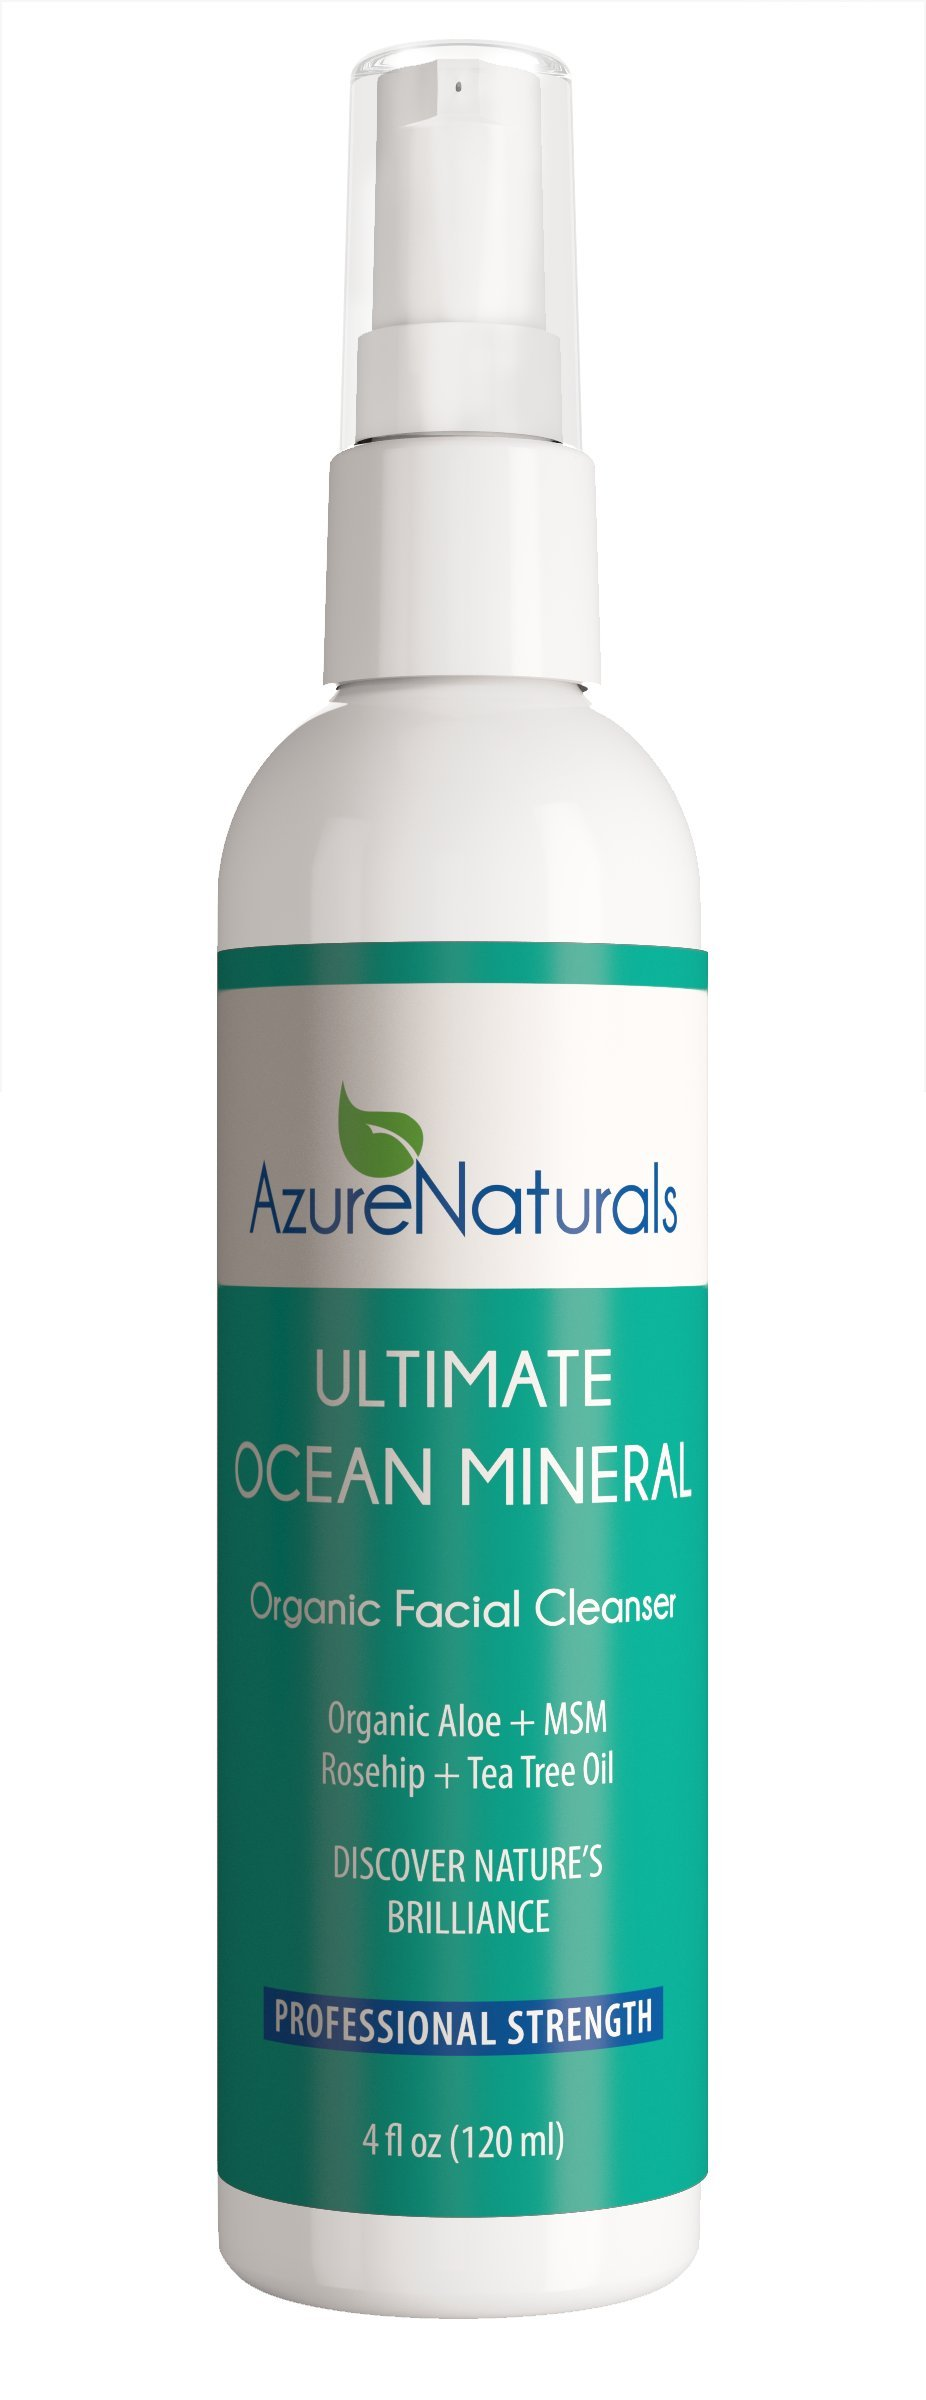 ULTIMATE OCEAN Mineral Organic Facial Cleanser Offers High-End Spa Quality Oceanic Minerals Will Nourish Dry Skin & Damaged Skin, Diminish Discoloration & Leave your Skin Clean, Healthy, & Youthful!